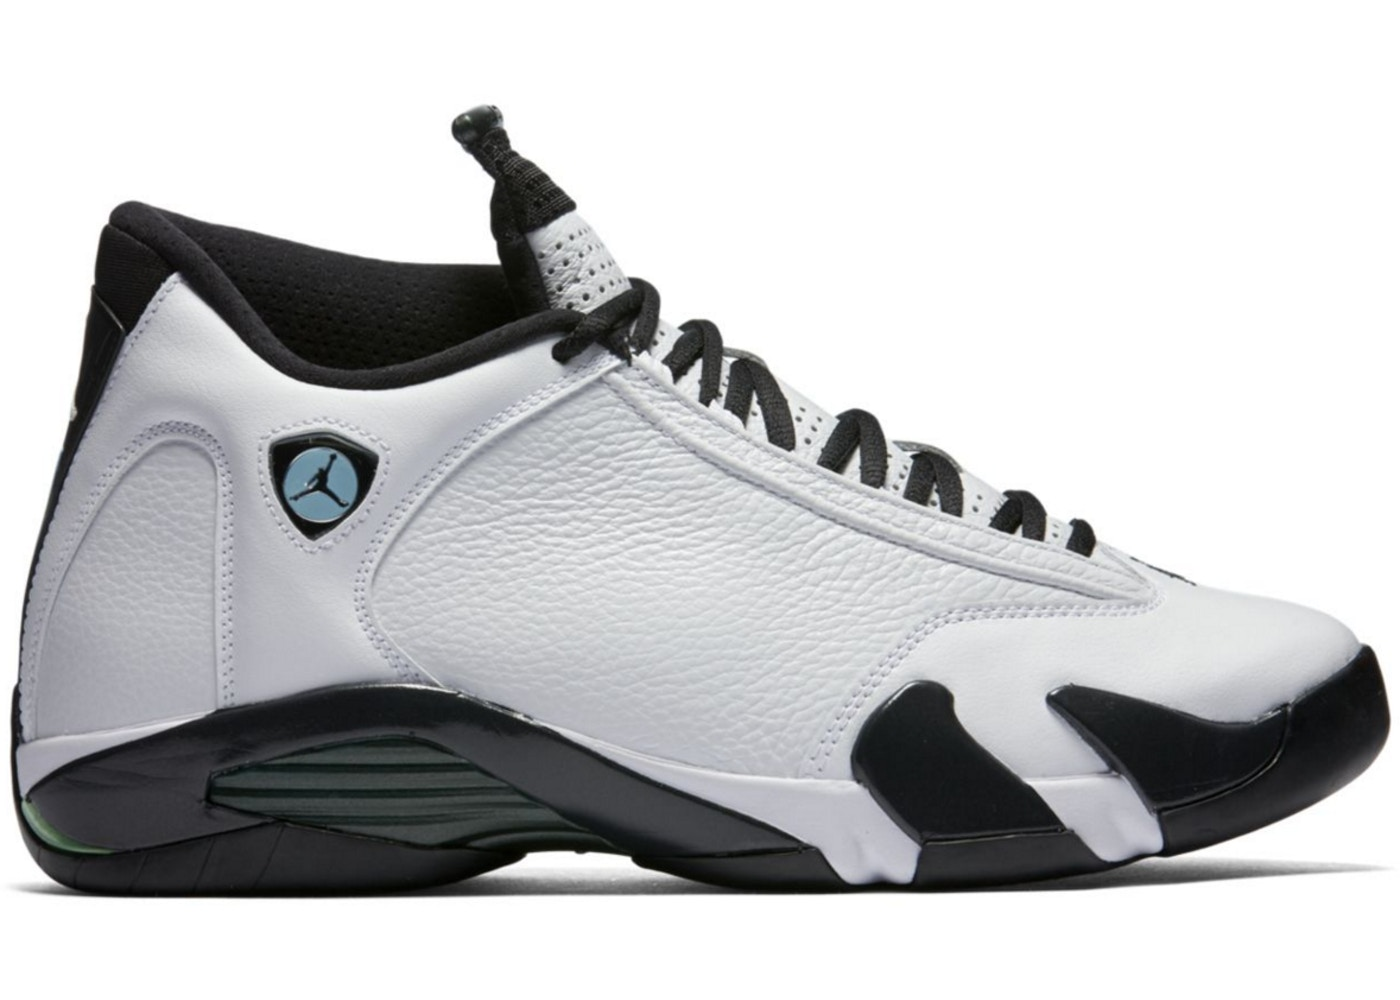 381c8a9f053357 Jordan 14 Retro Oxidized Green (2016) - 487471-106